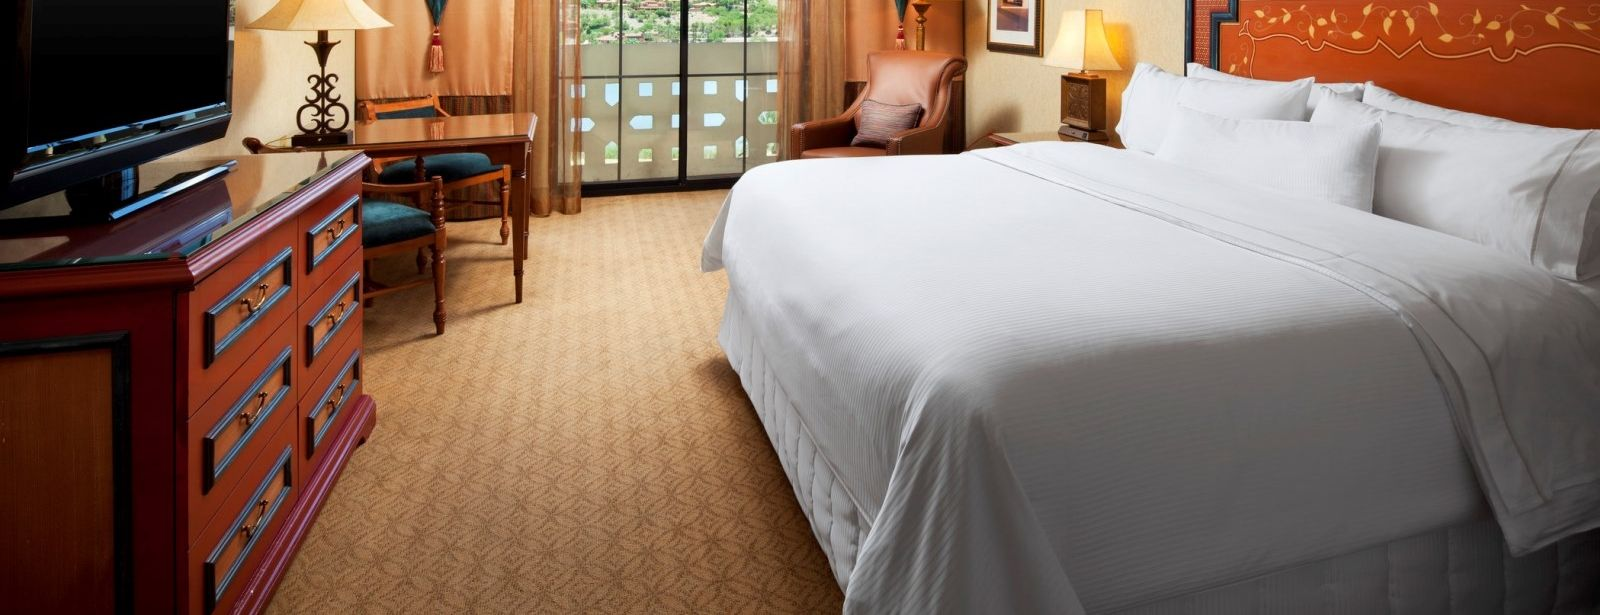 lake las vegas hotels - premium room